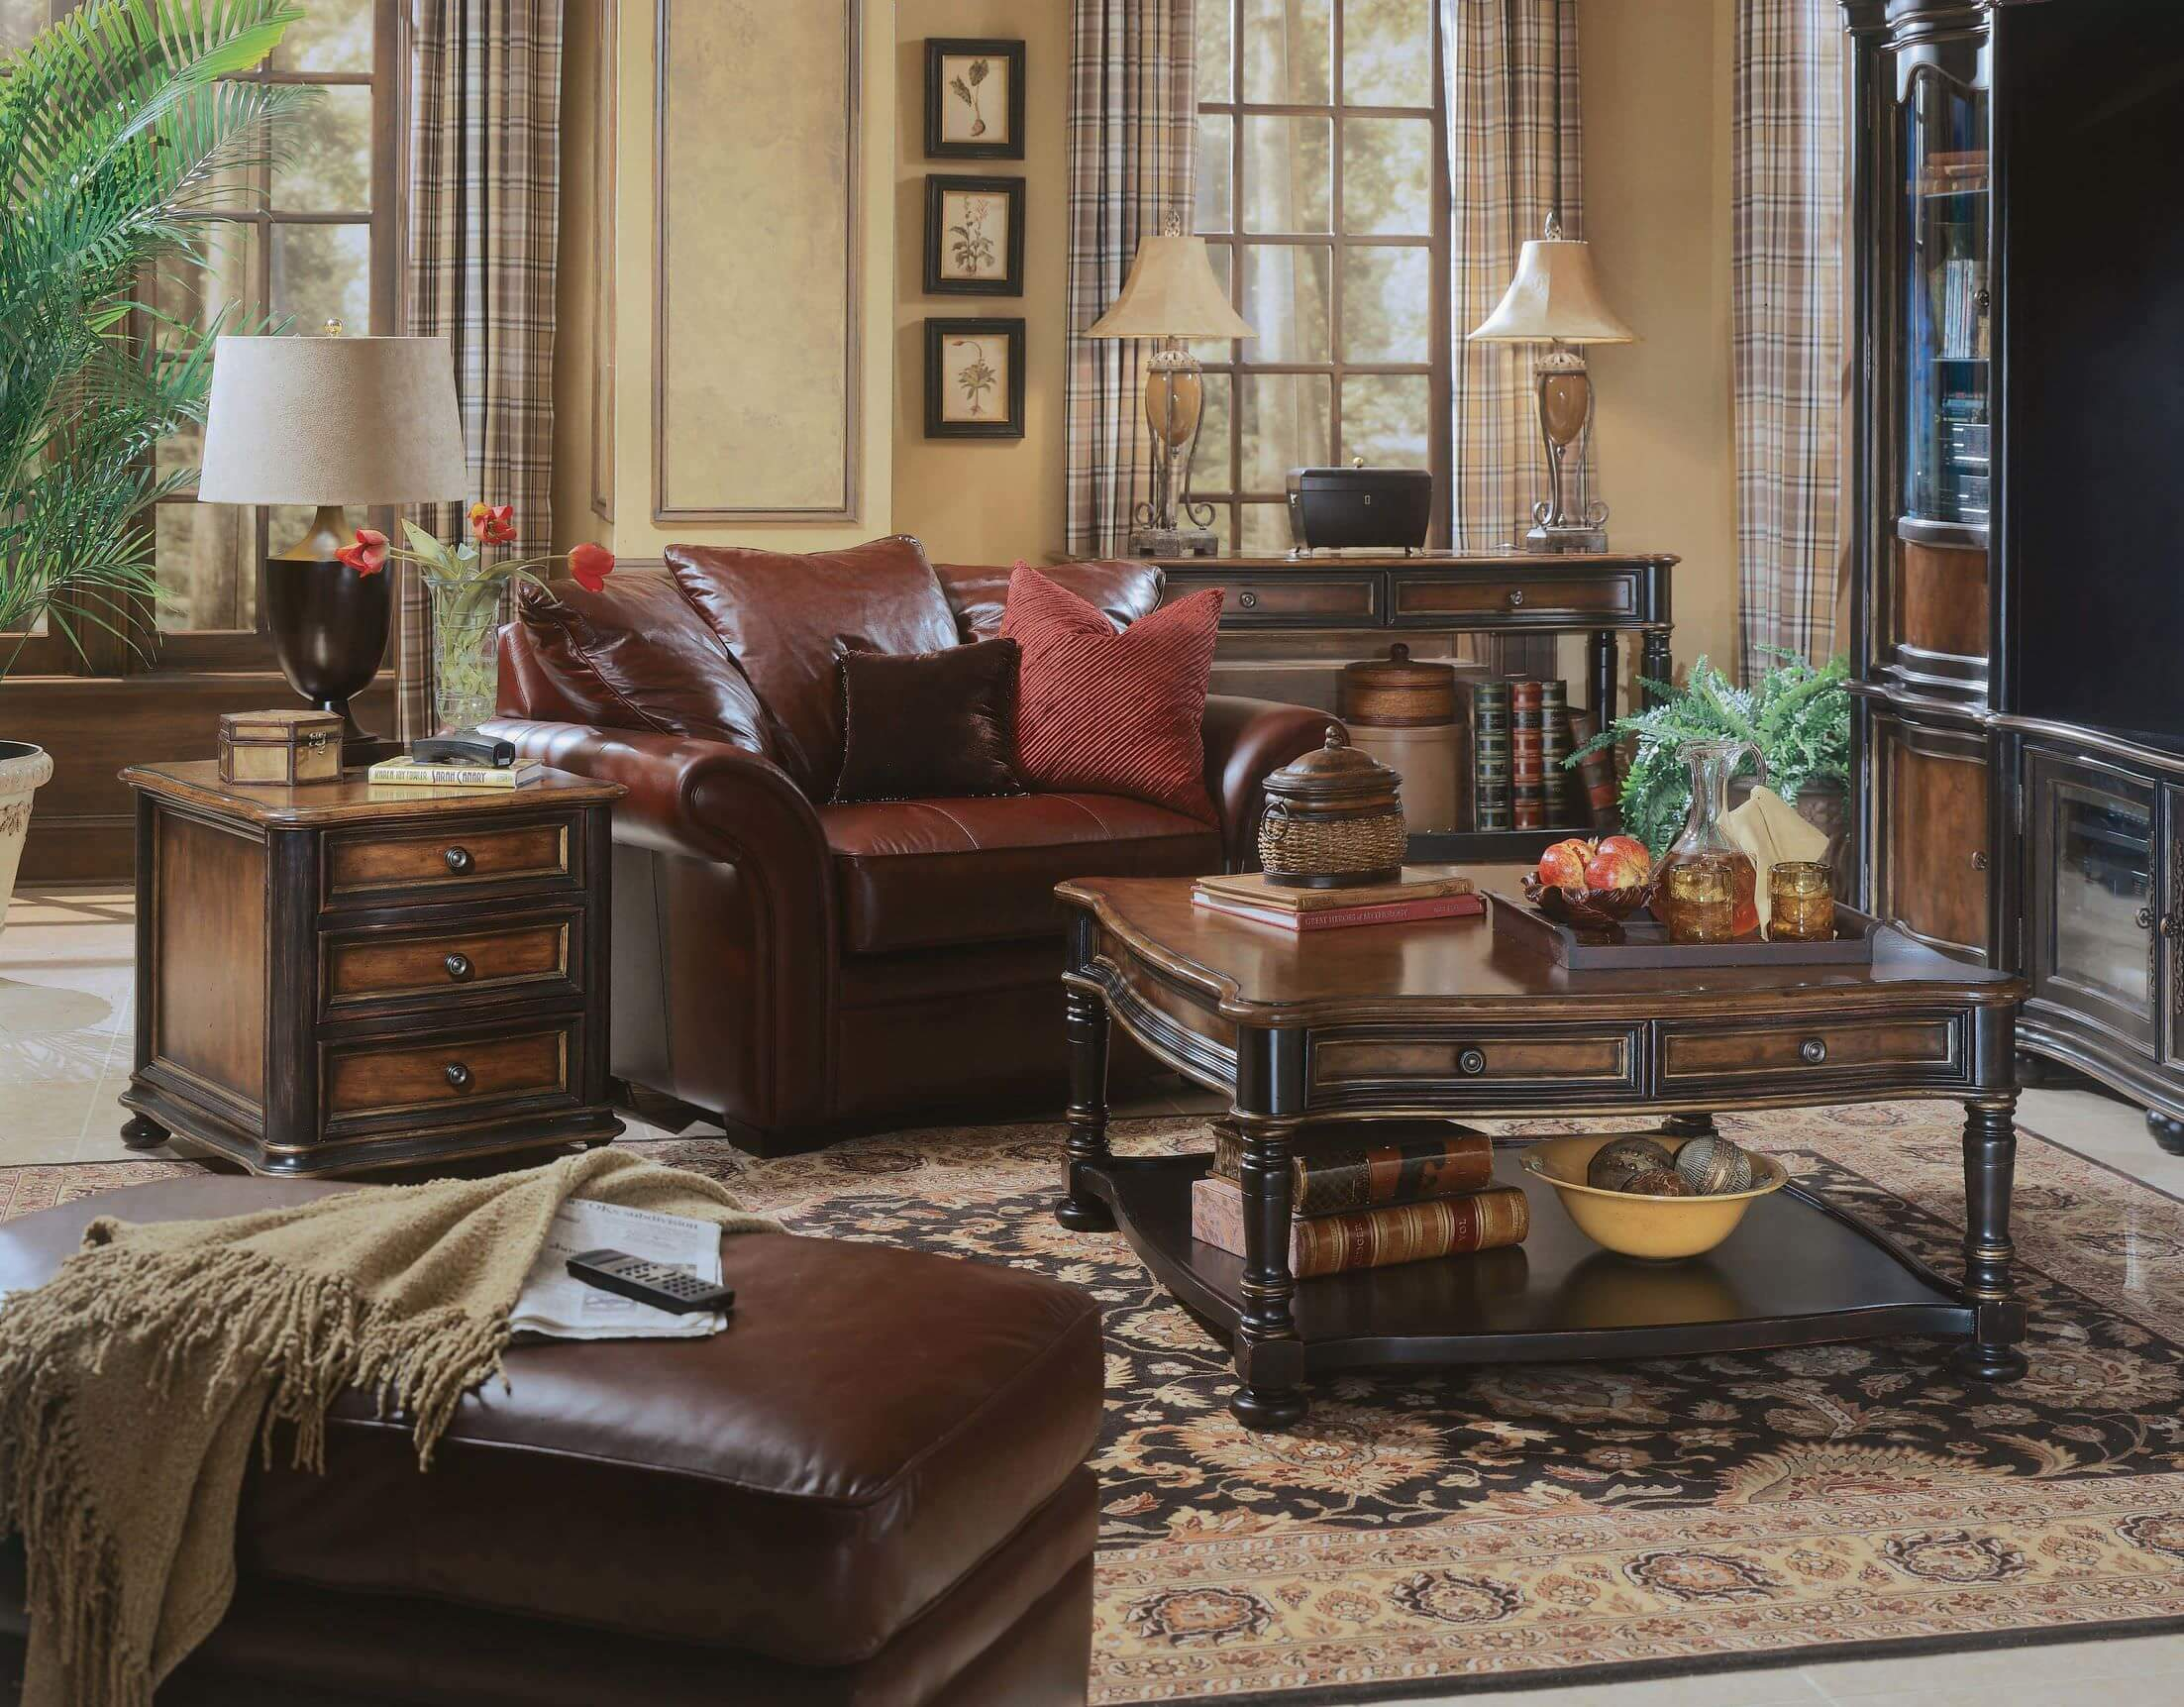 Living room color combinations with brown furniture - If You Want To Give Your Living Room An Antique Feeling Why Not Play With